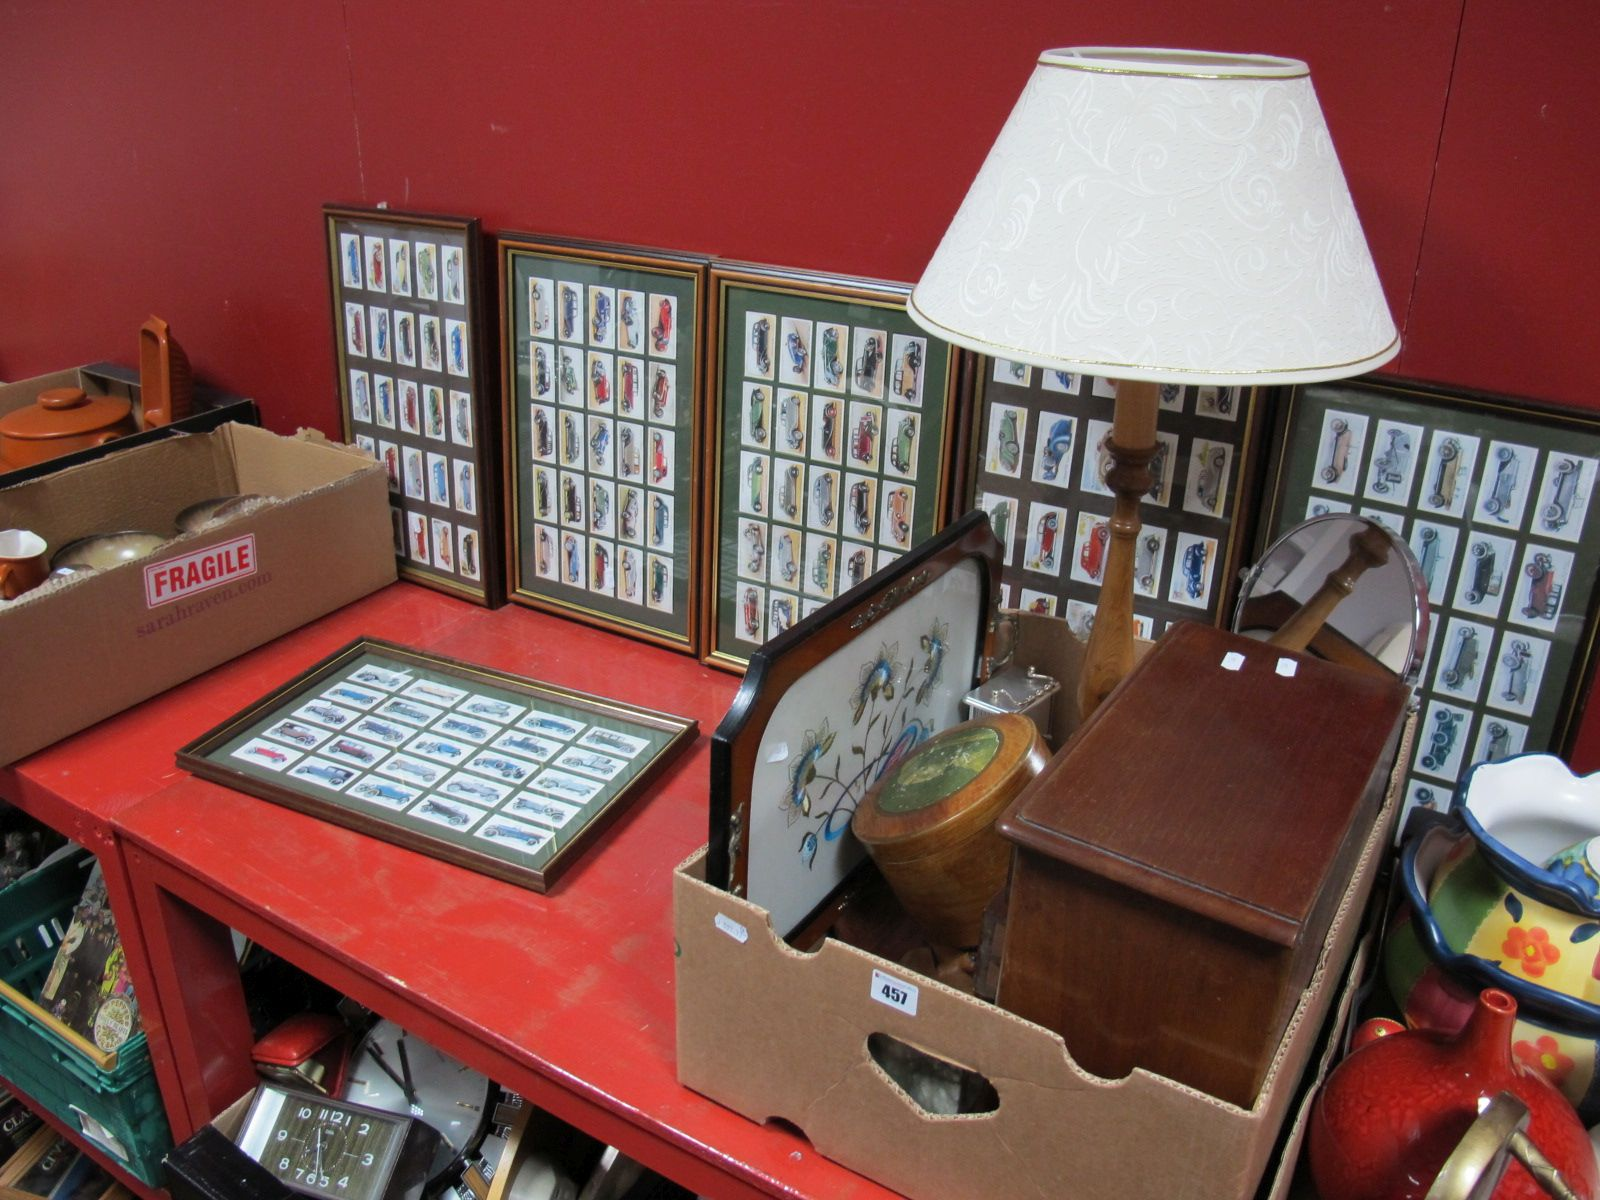 Lot 457 - A Quantity of Framed Reproduction Cigarette Card Sets (6), jewellery cabinet, table lamp,